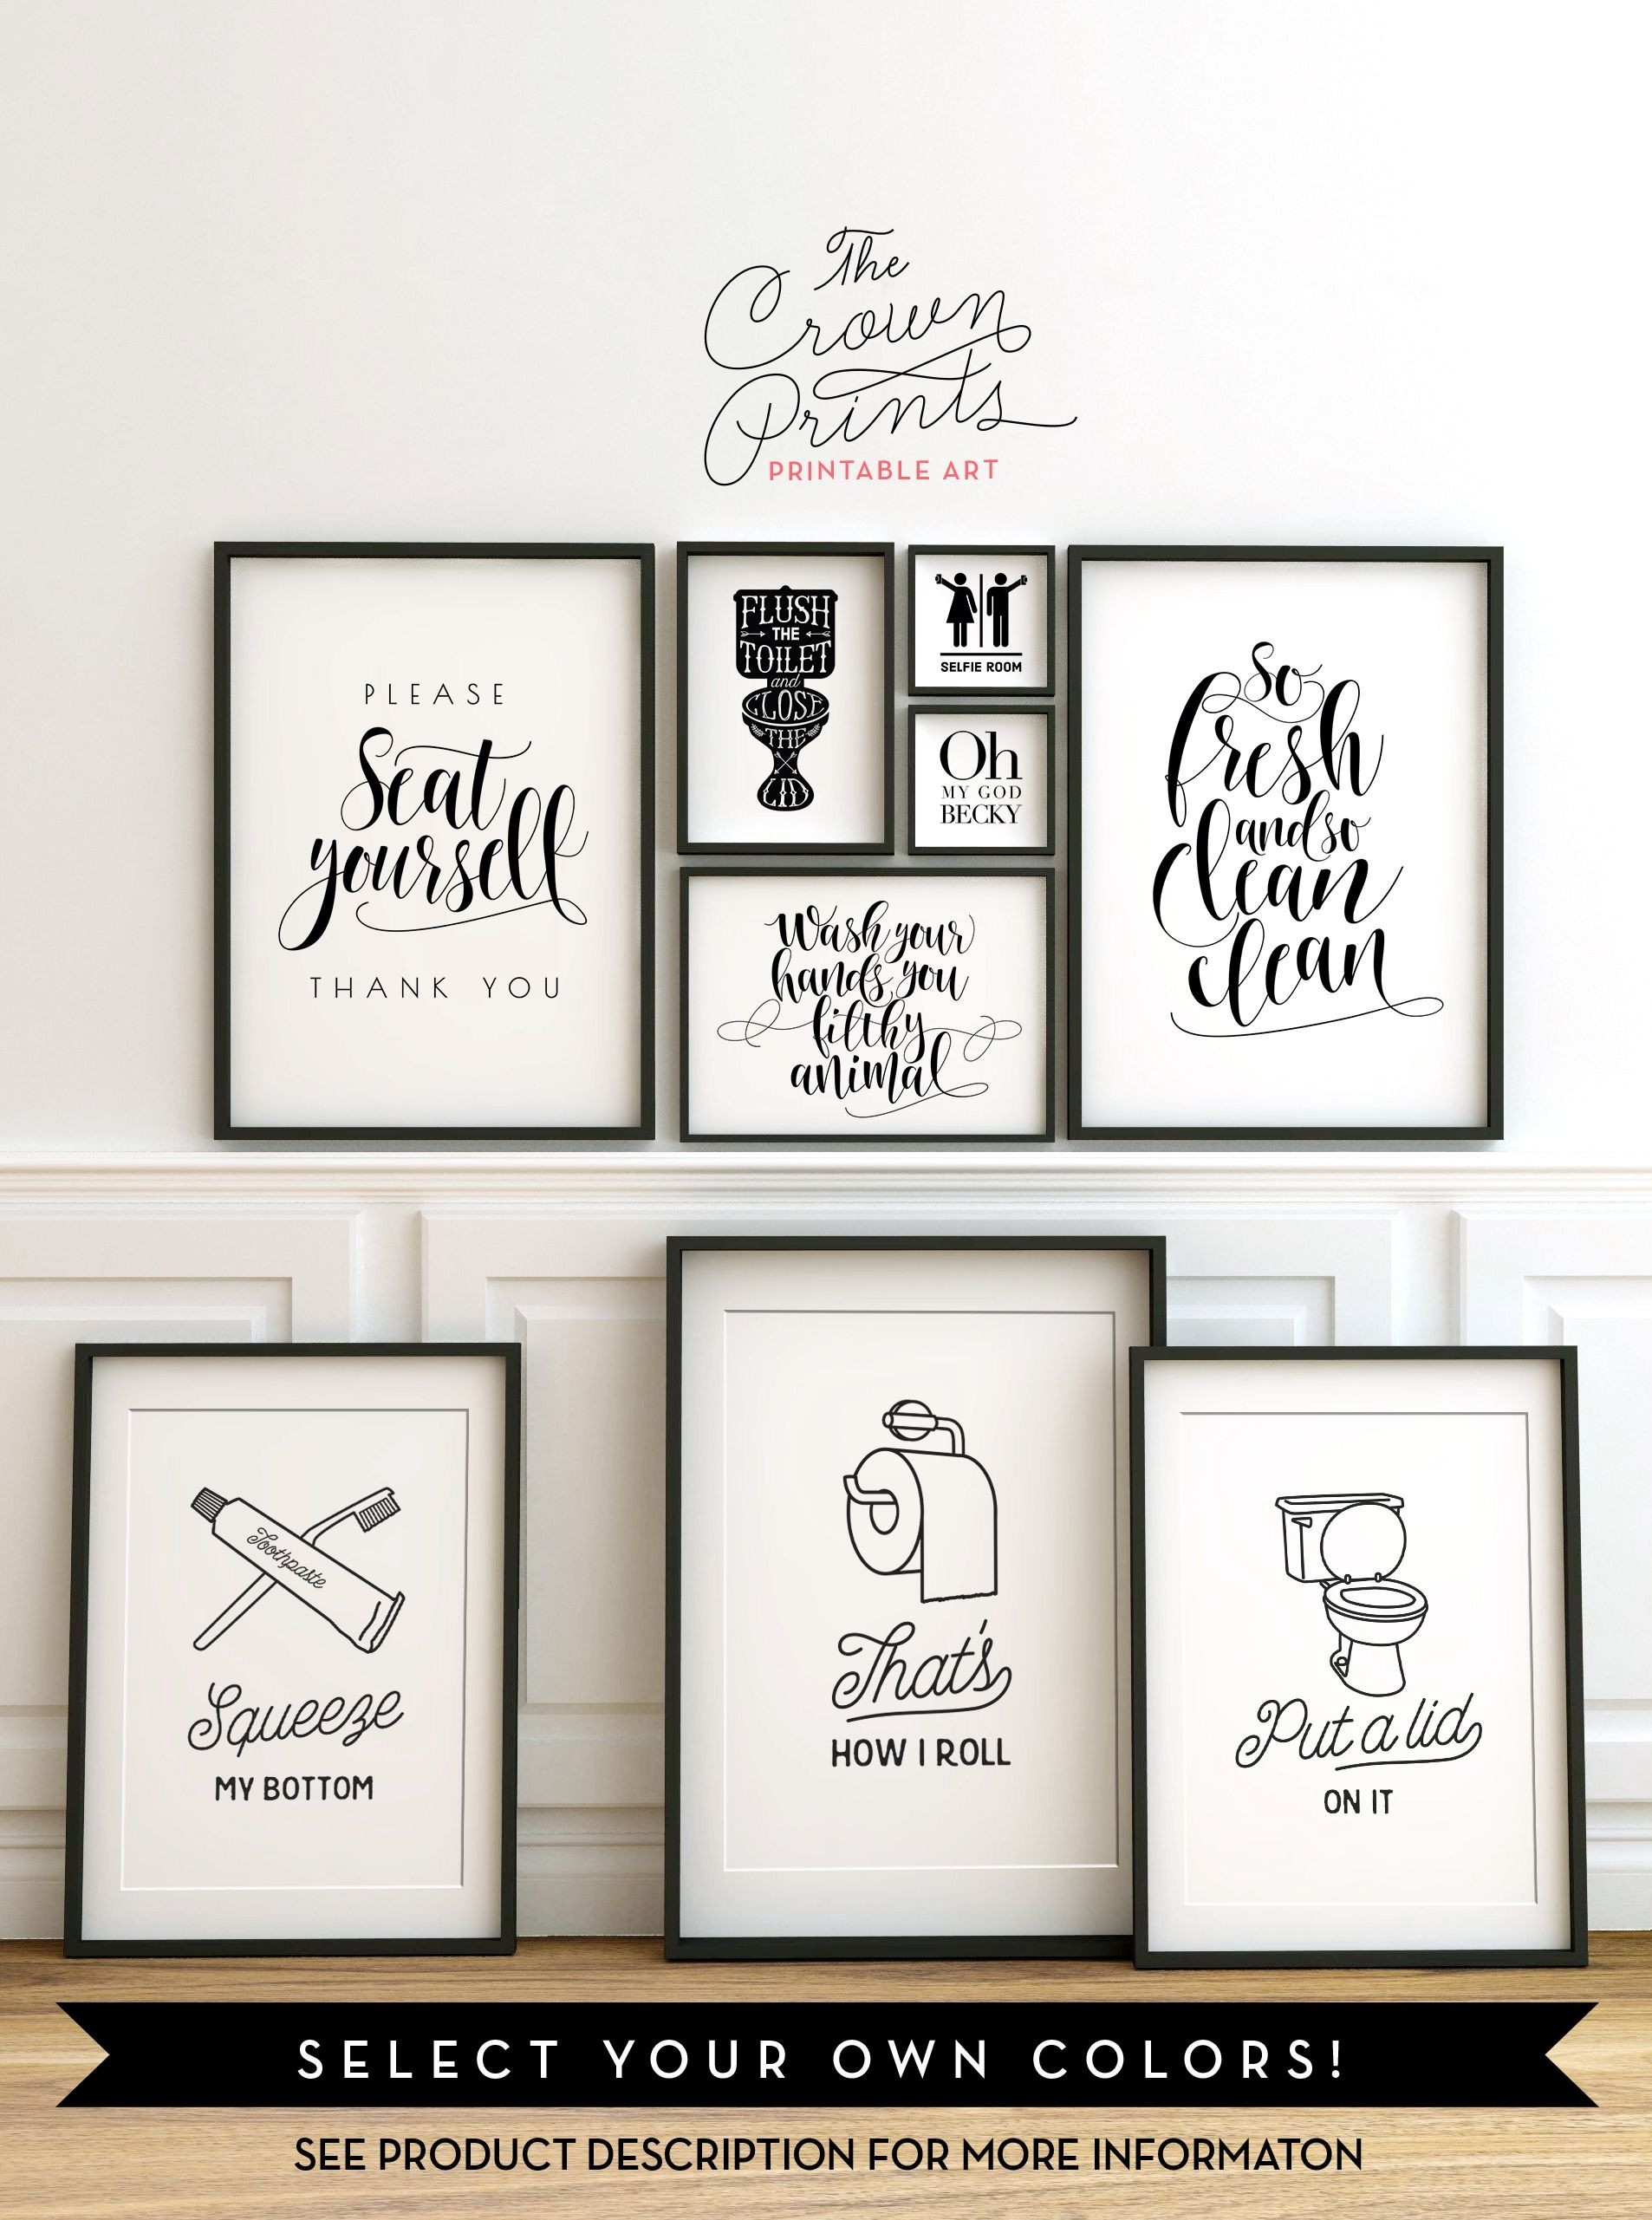 Printable Bathroom Wall Art From The Crown Prints On Etsy Lots Of Pertaining To Most Popular Bathroom Rules Wall Art (Gallery 14 of 20)